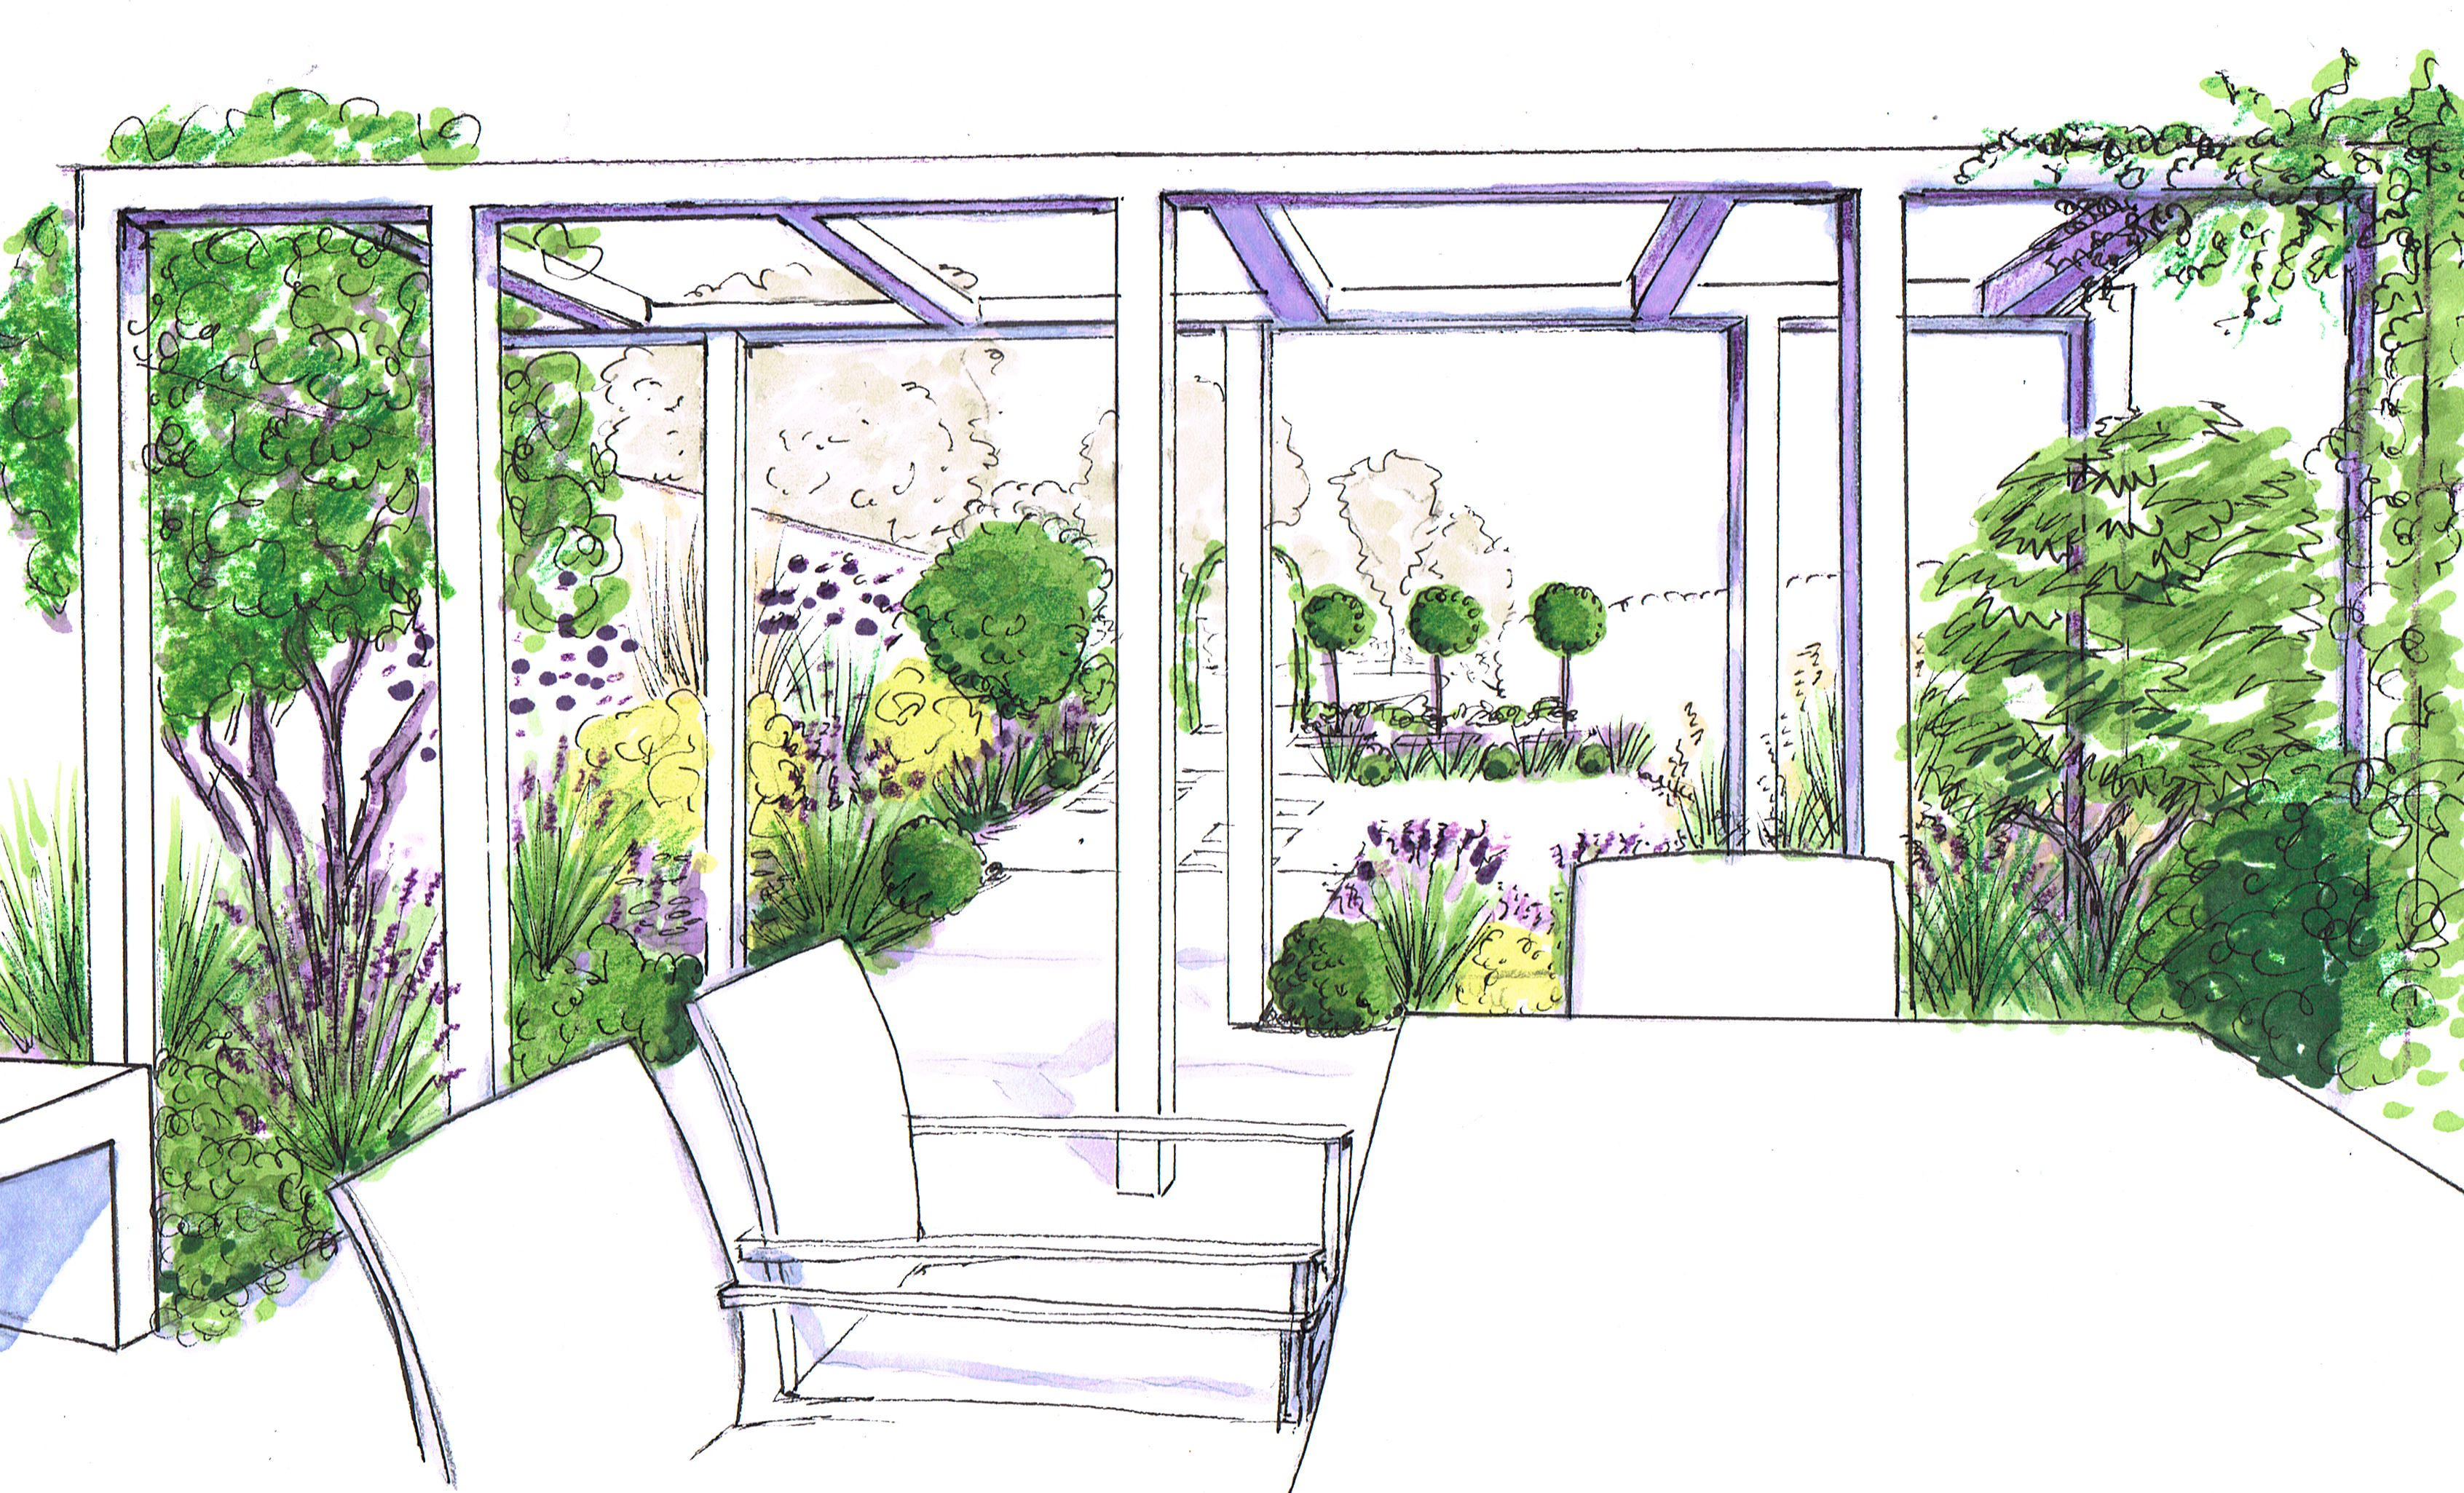 A design for a pergola to shade the dining patio in this garden